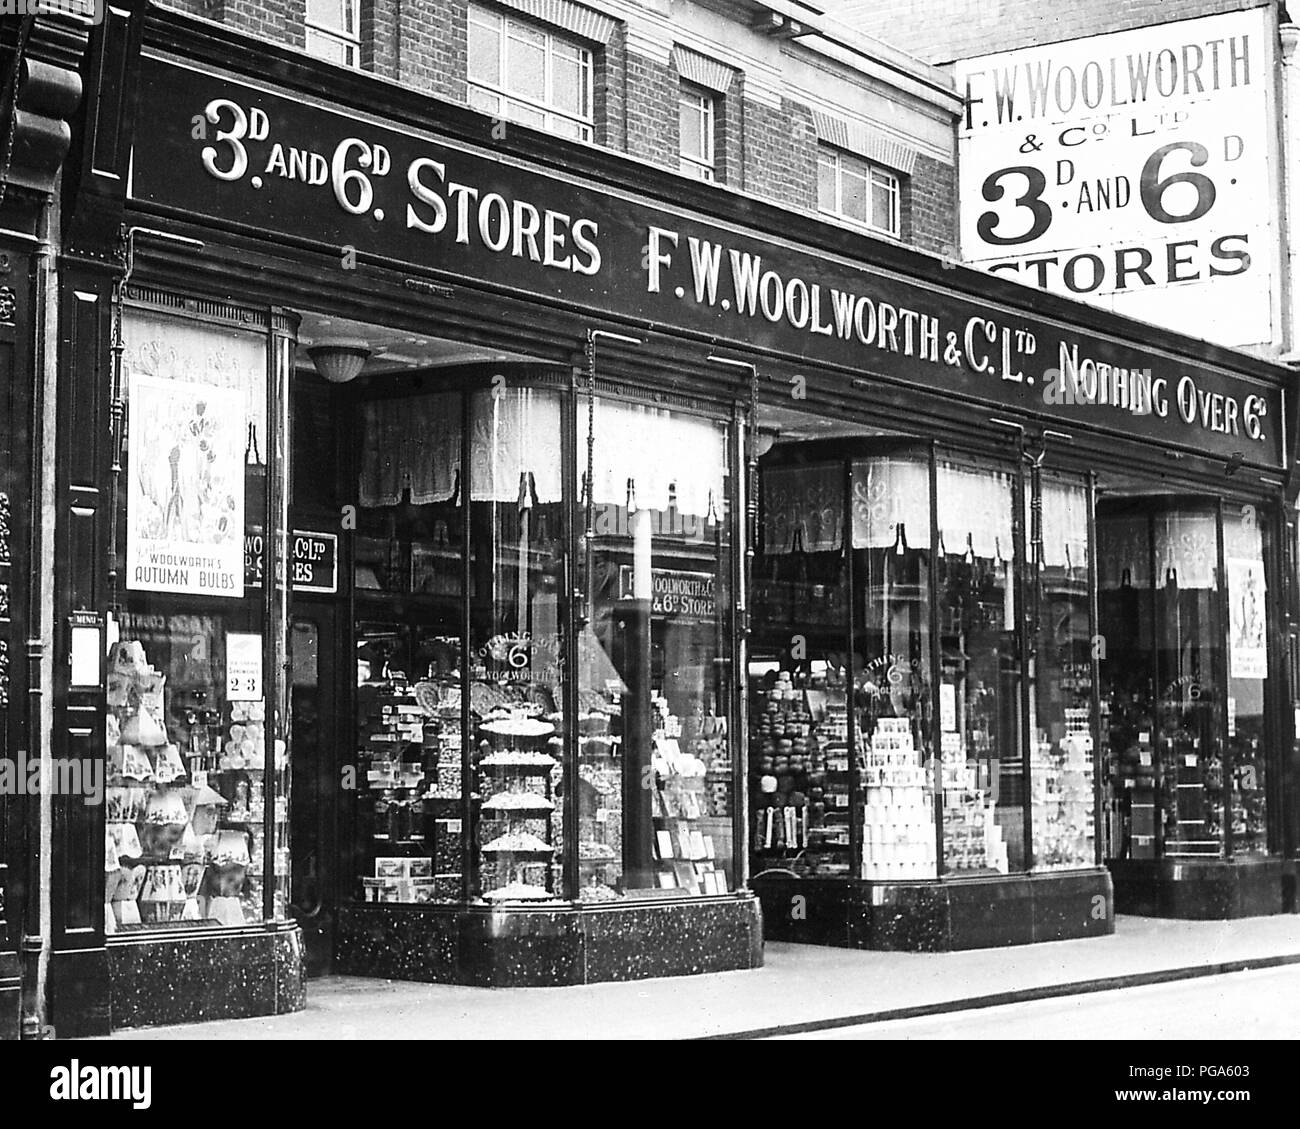 Woolworths Black and White Stock Photos & Images - Alamy